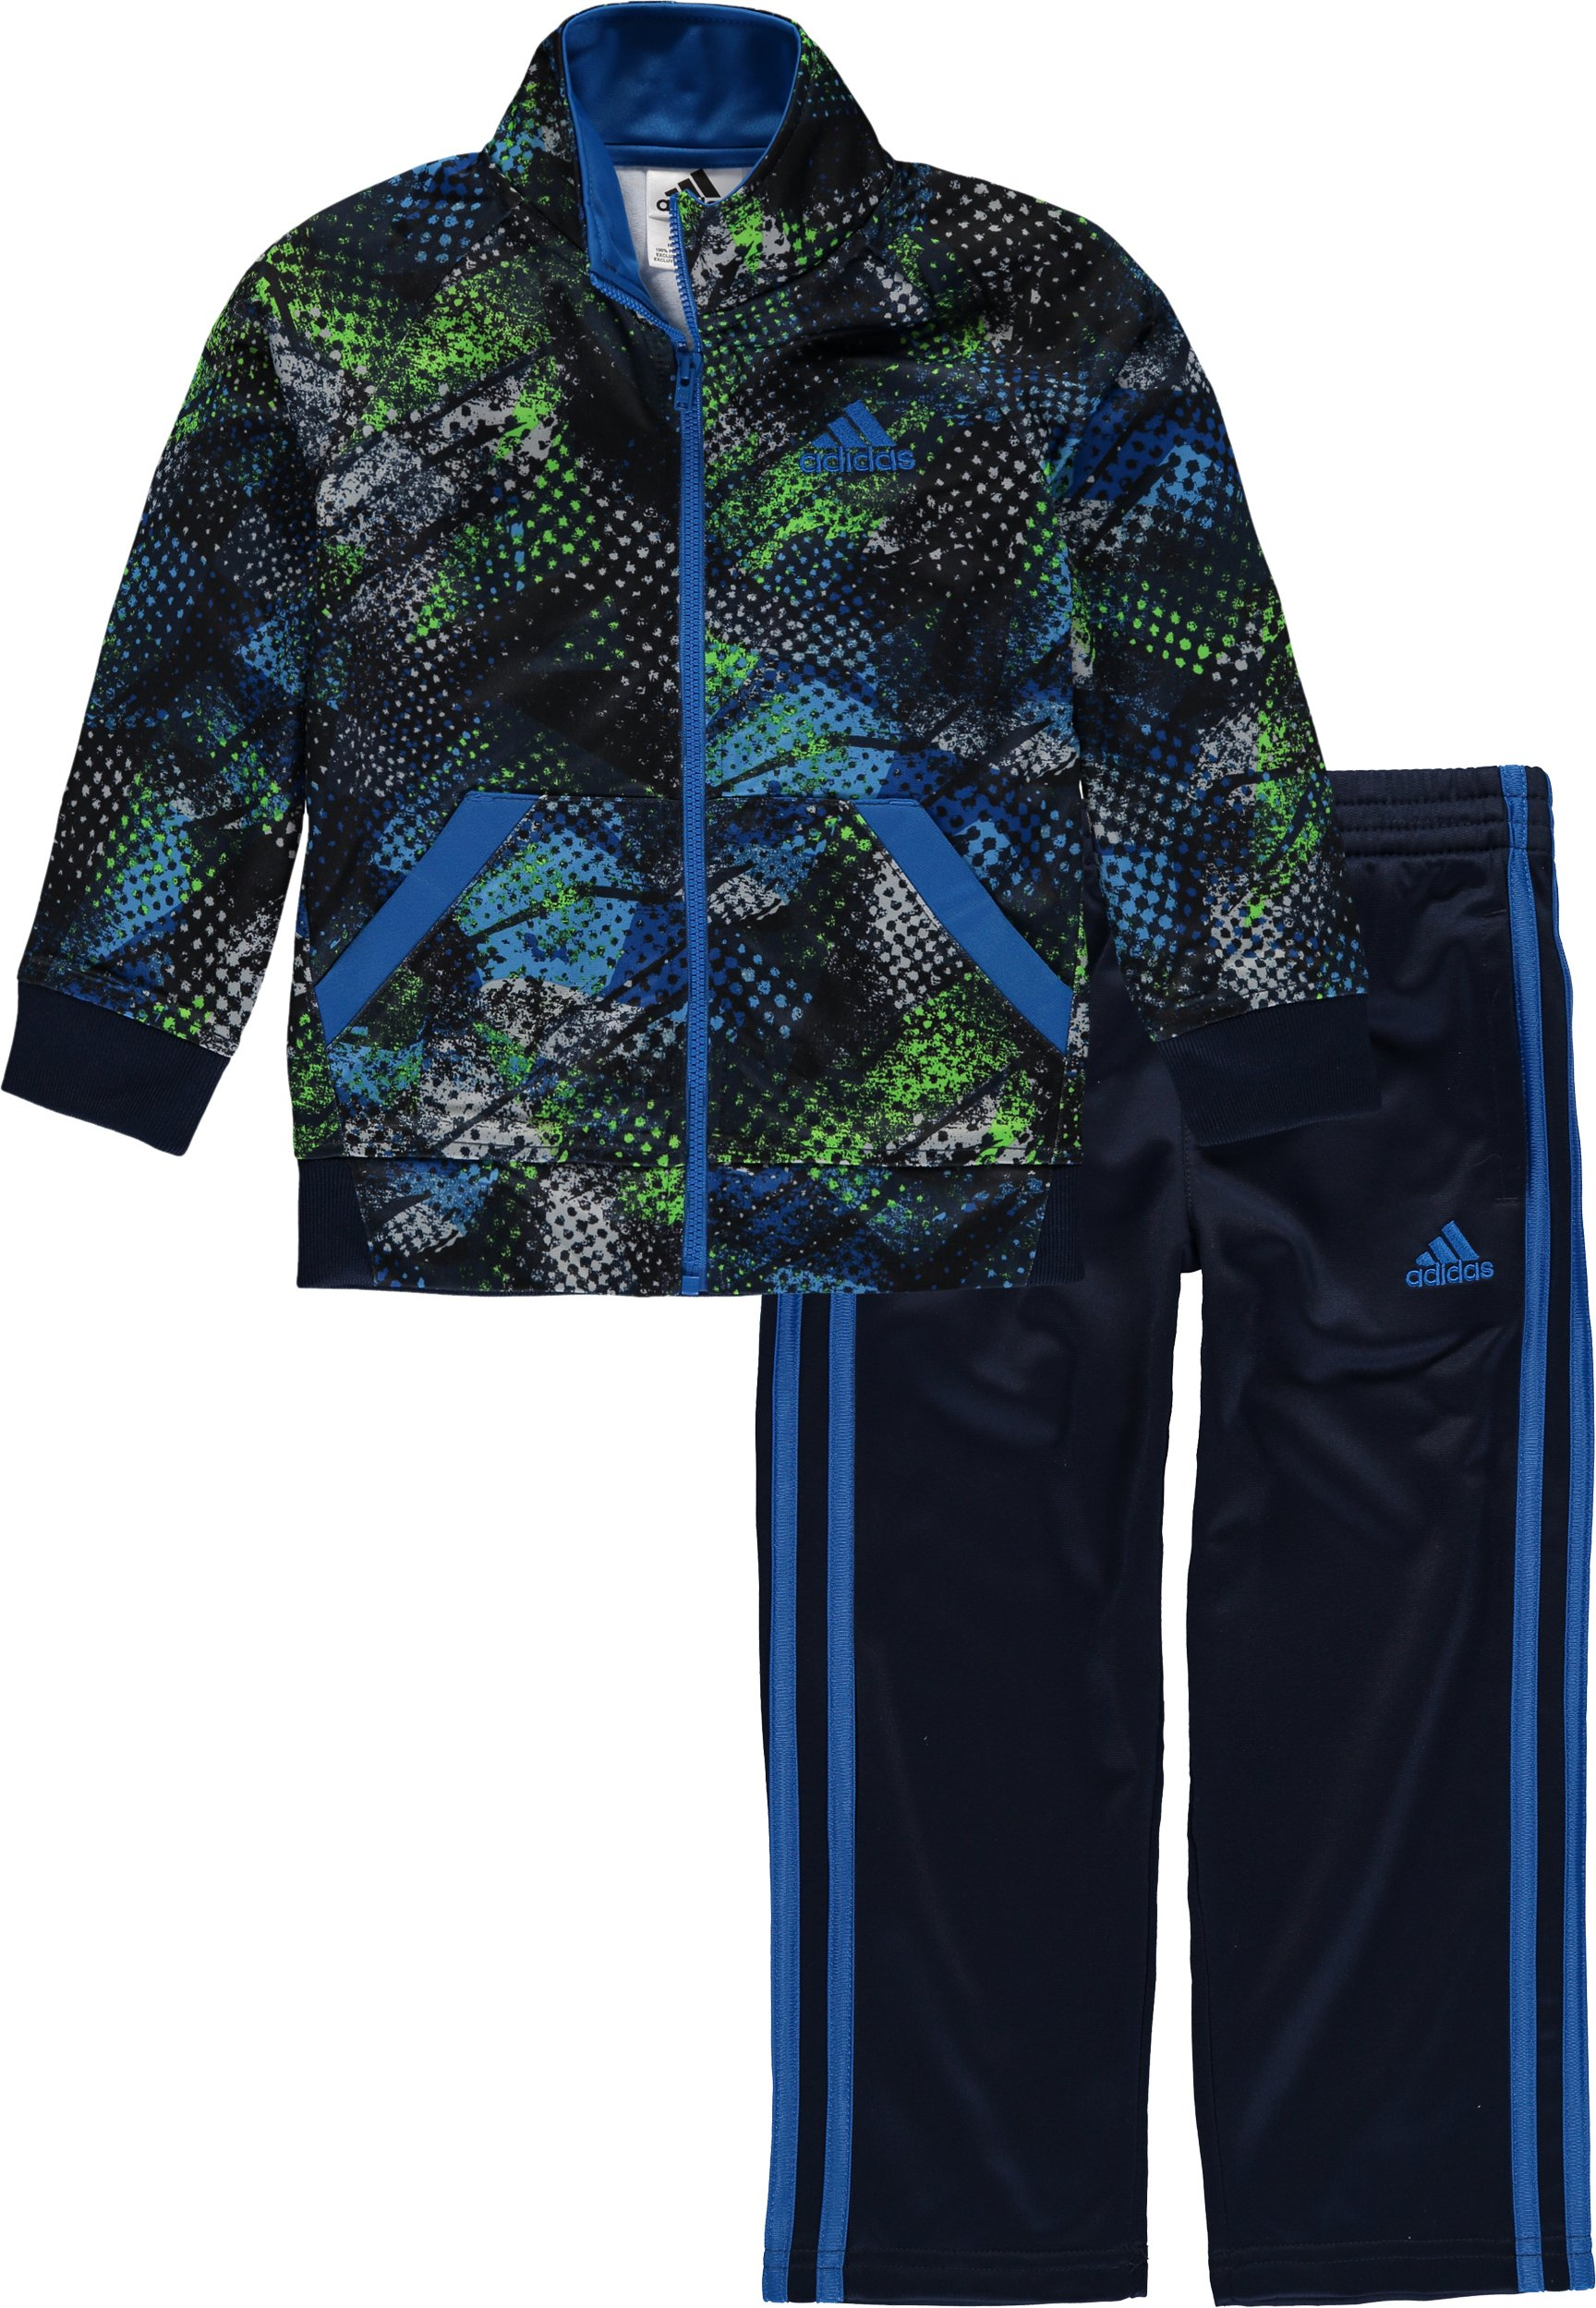 a7ba7b3505 Cheap Men Adidas Jacket, find Men Adidas Jacket deals on line at ...